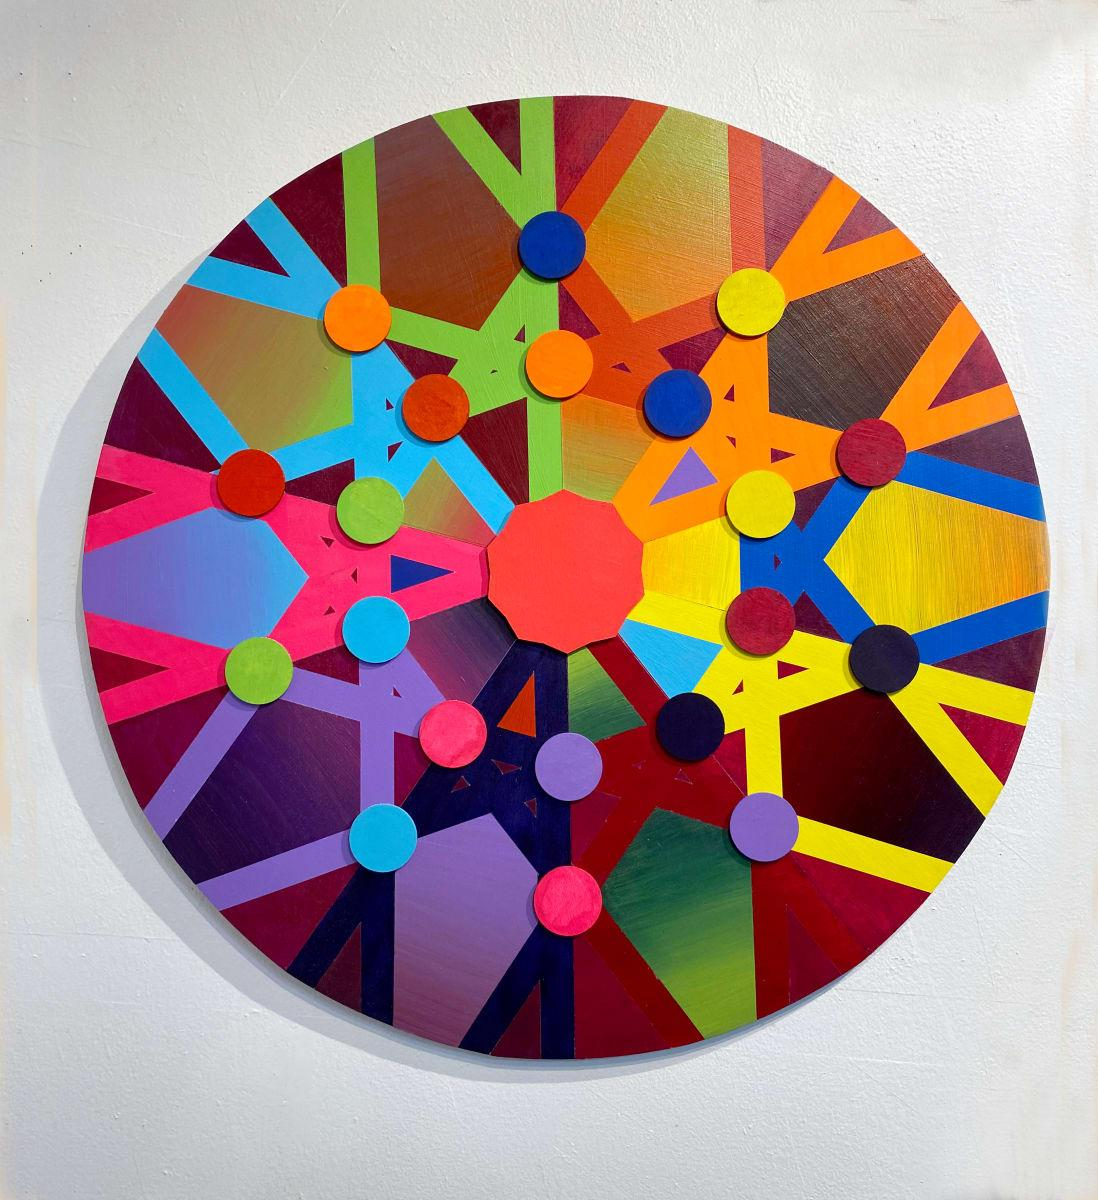 Allotropy, Acrylic on Wood, Wall sculpture by Christine Romanell